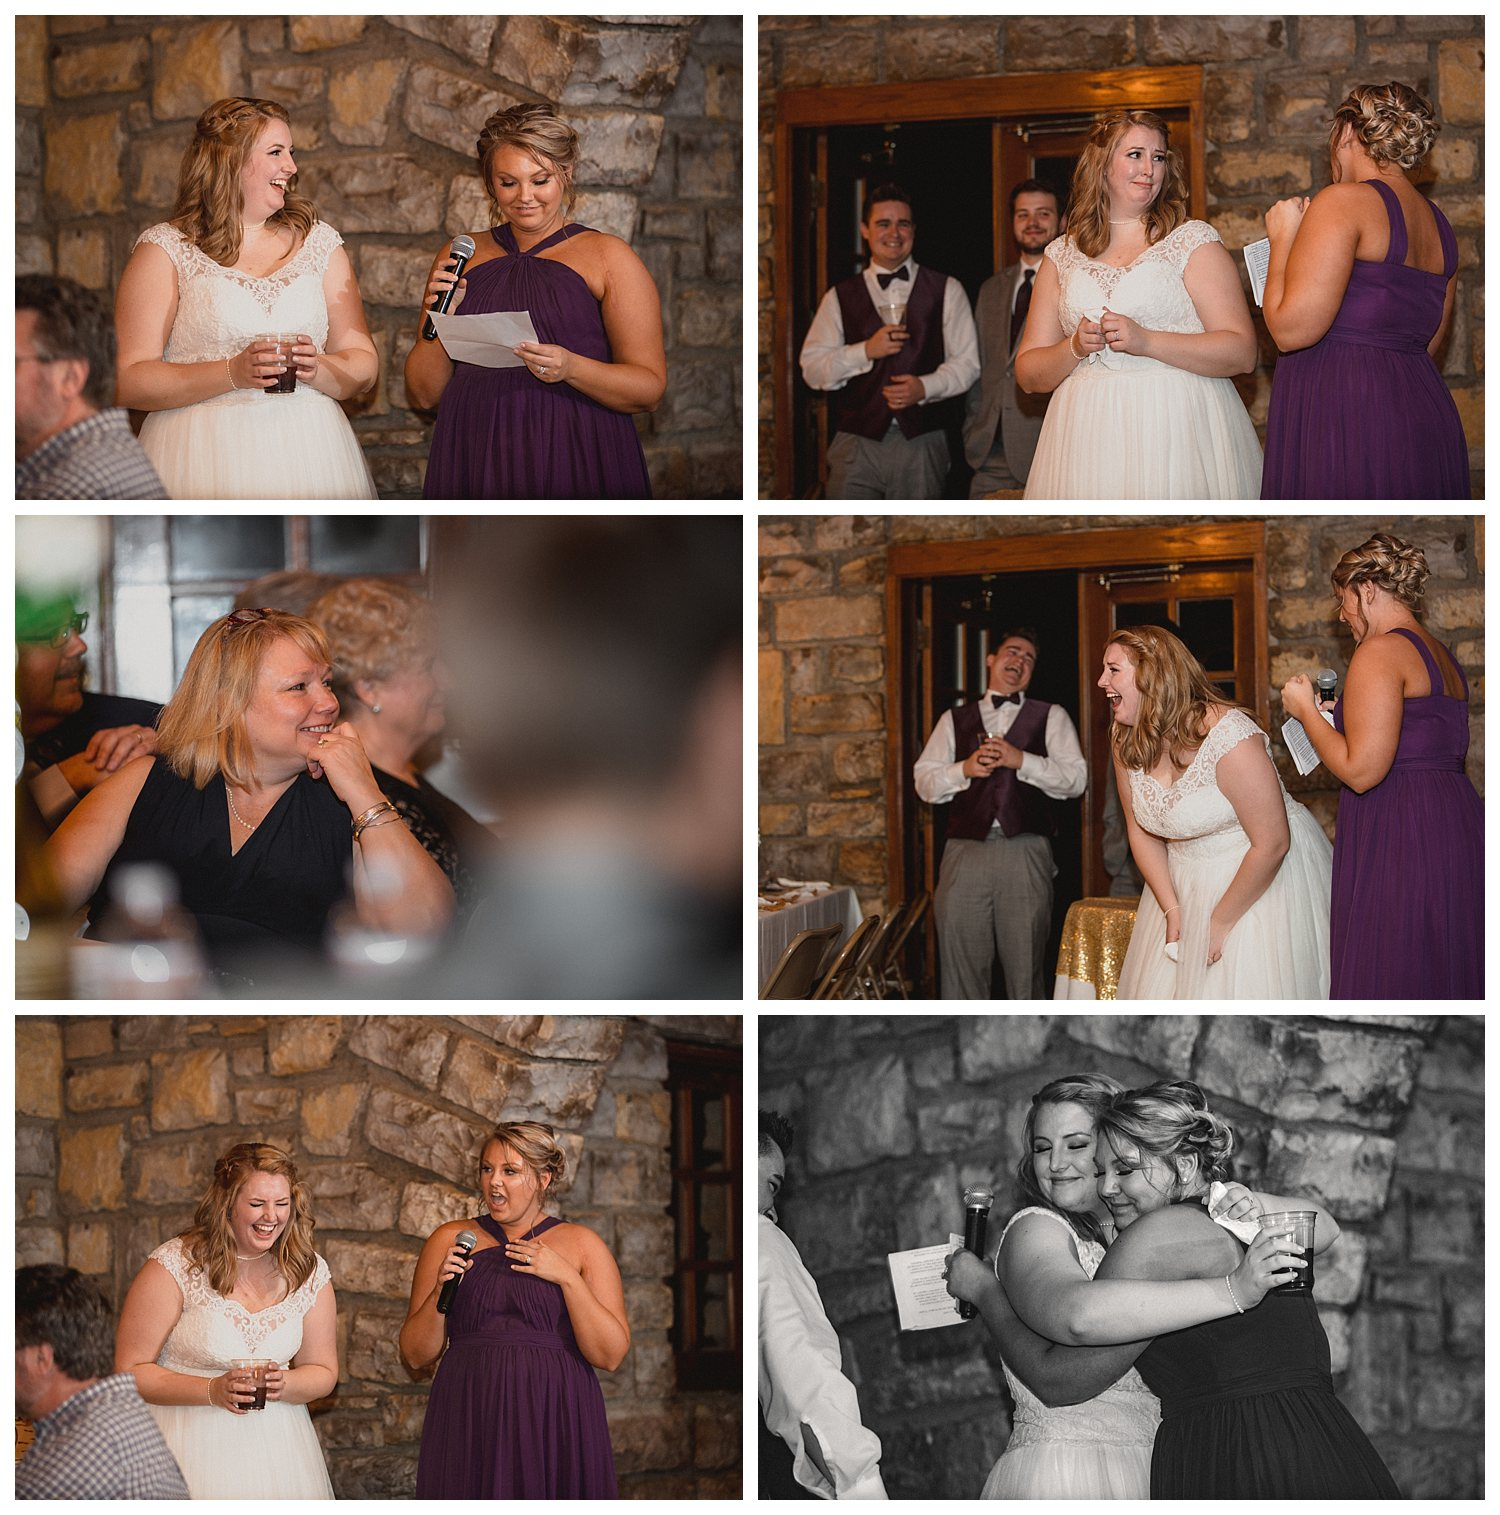 Kelsey_Diane_Photography_Loose_Mansion_Wedding_Photography_Kansas_City_Victor_Lyndsay_0395.jpg